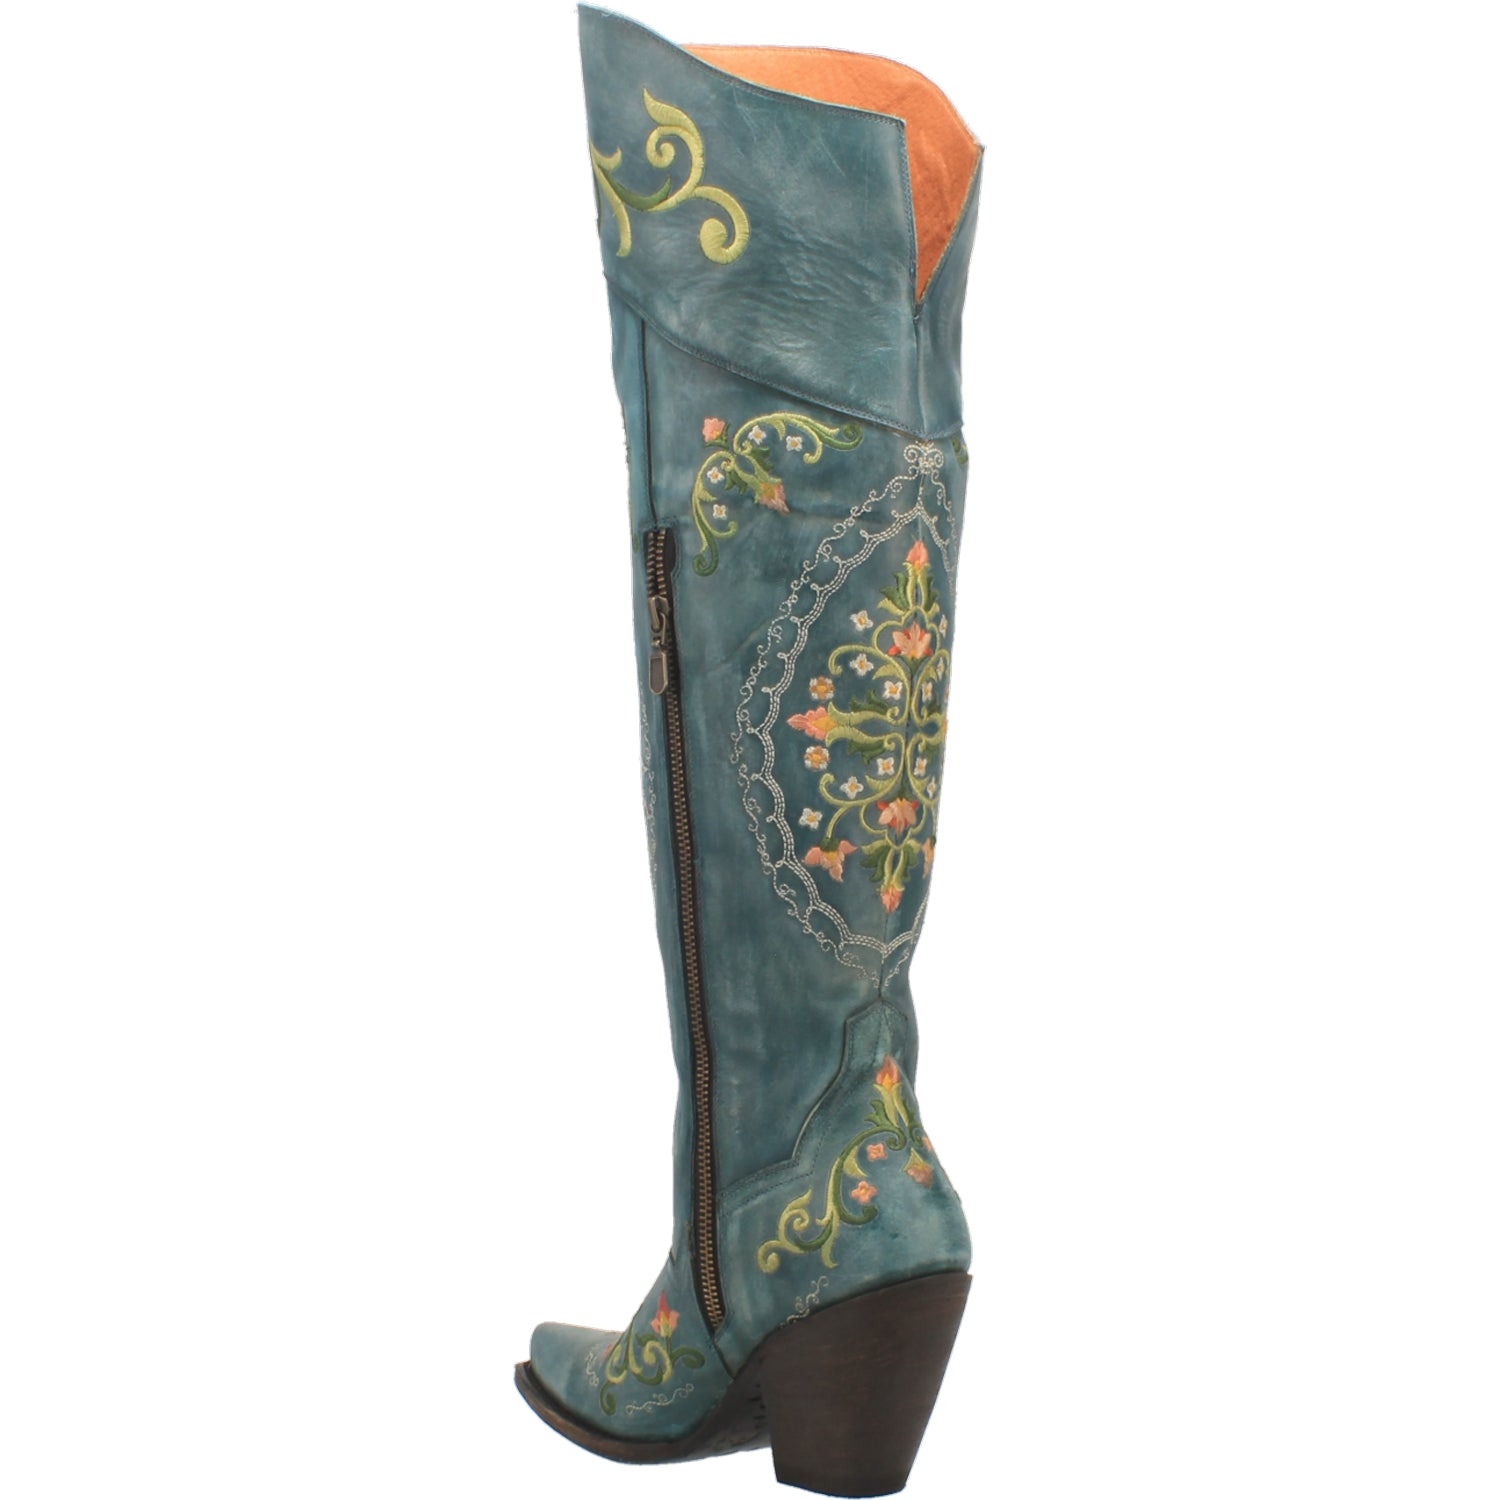 FLOWER CHILD LEATHER BOOT 15267551674410